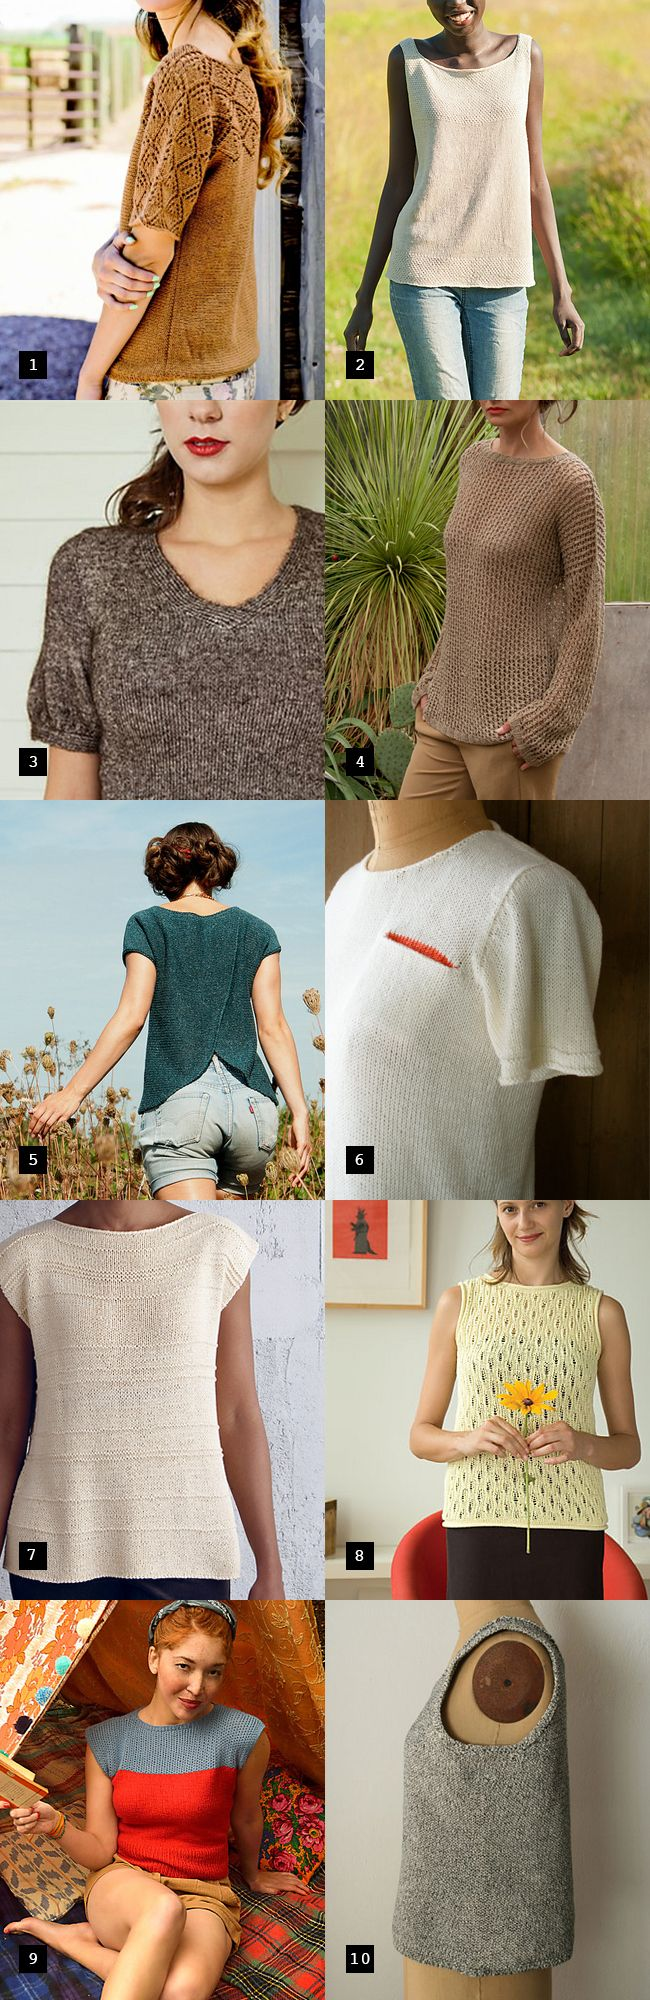 1390 best knit sweaters images on Pinterest | Knitting patterns ...